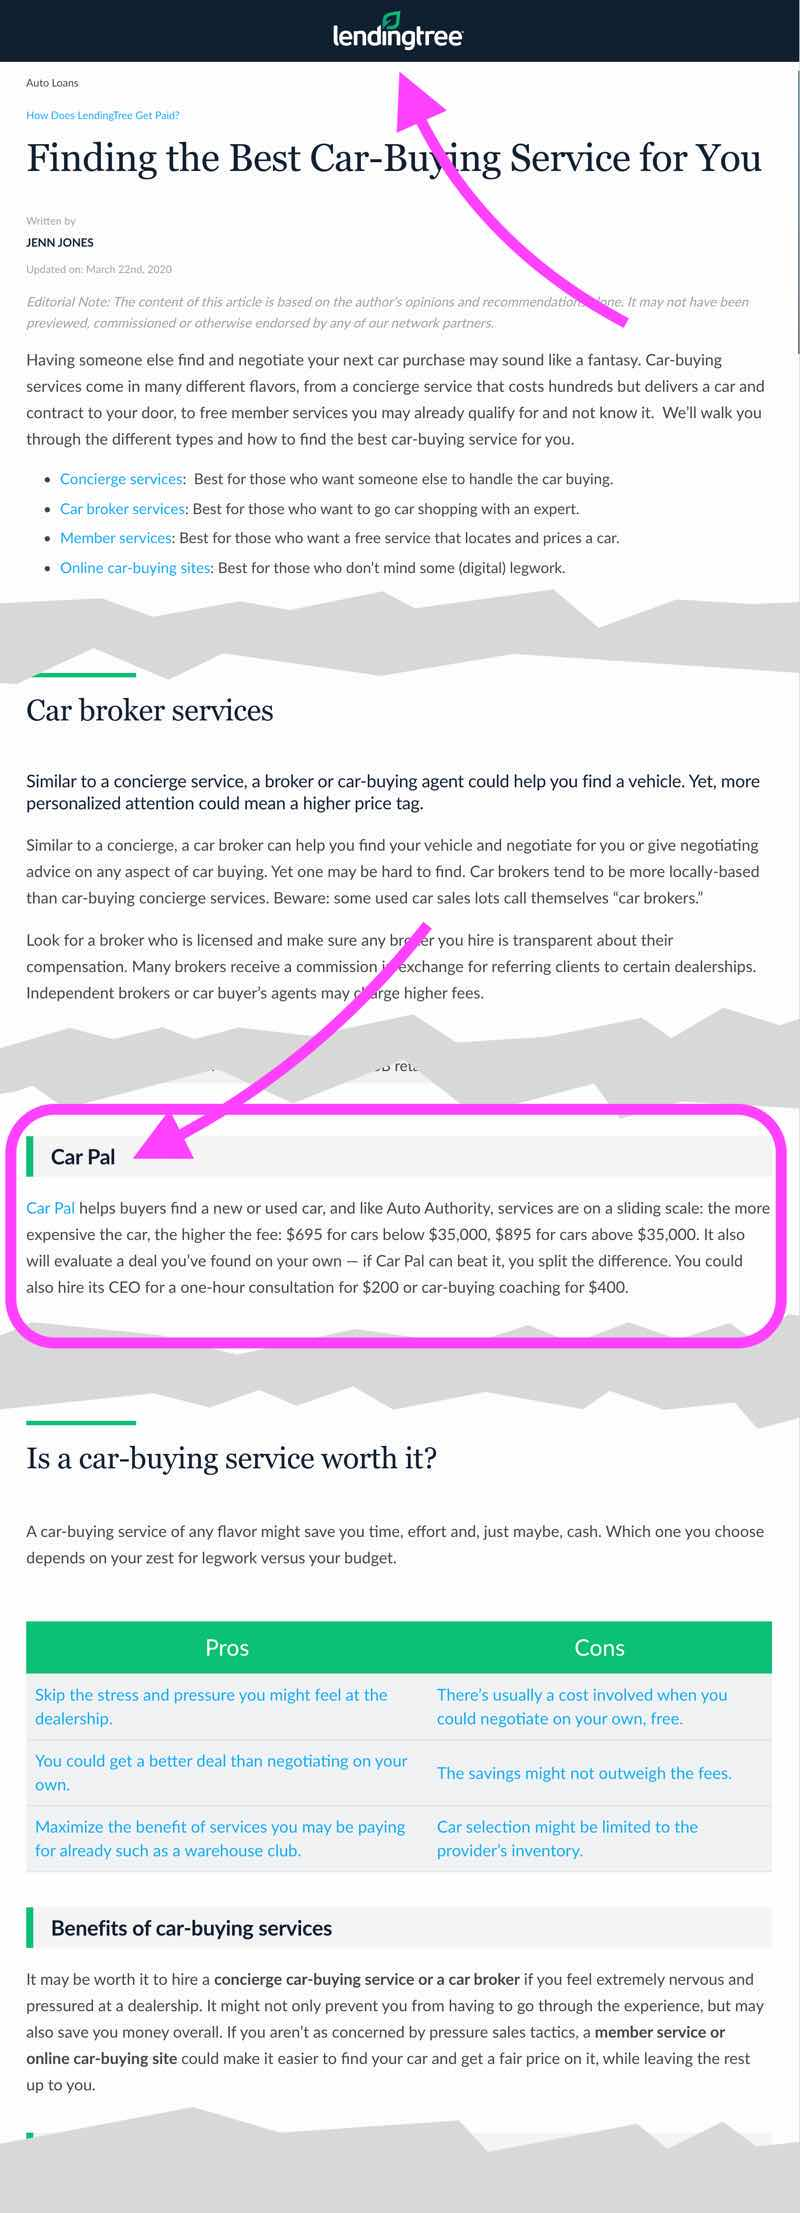 LendingTree: Finding the Best Car-Buying Service for You